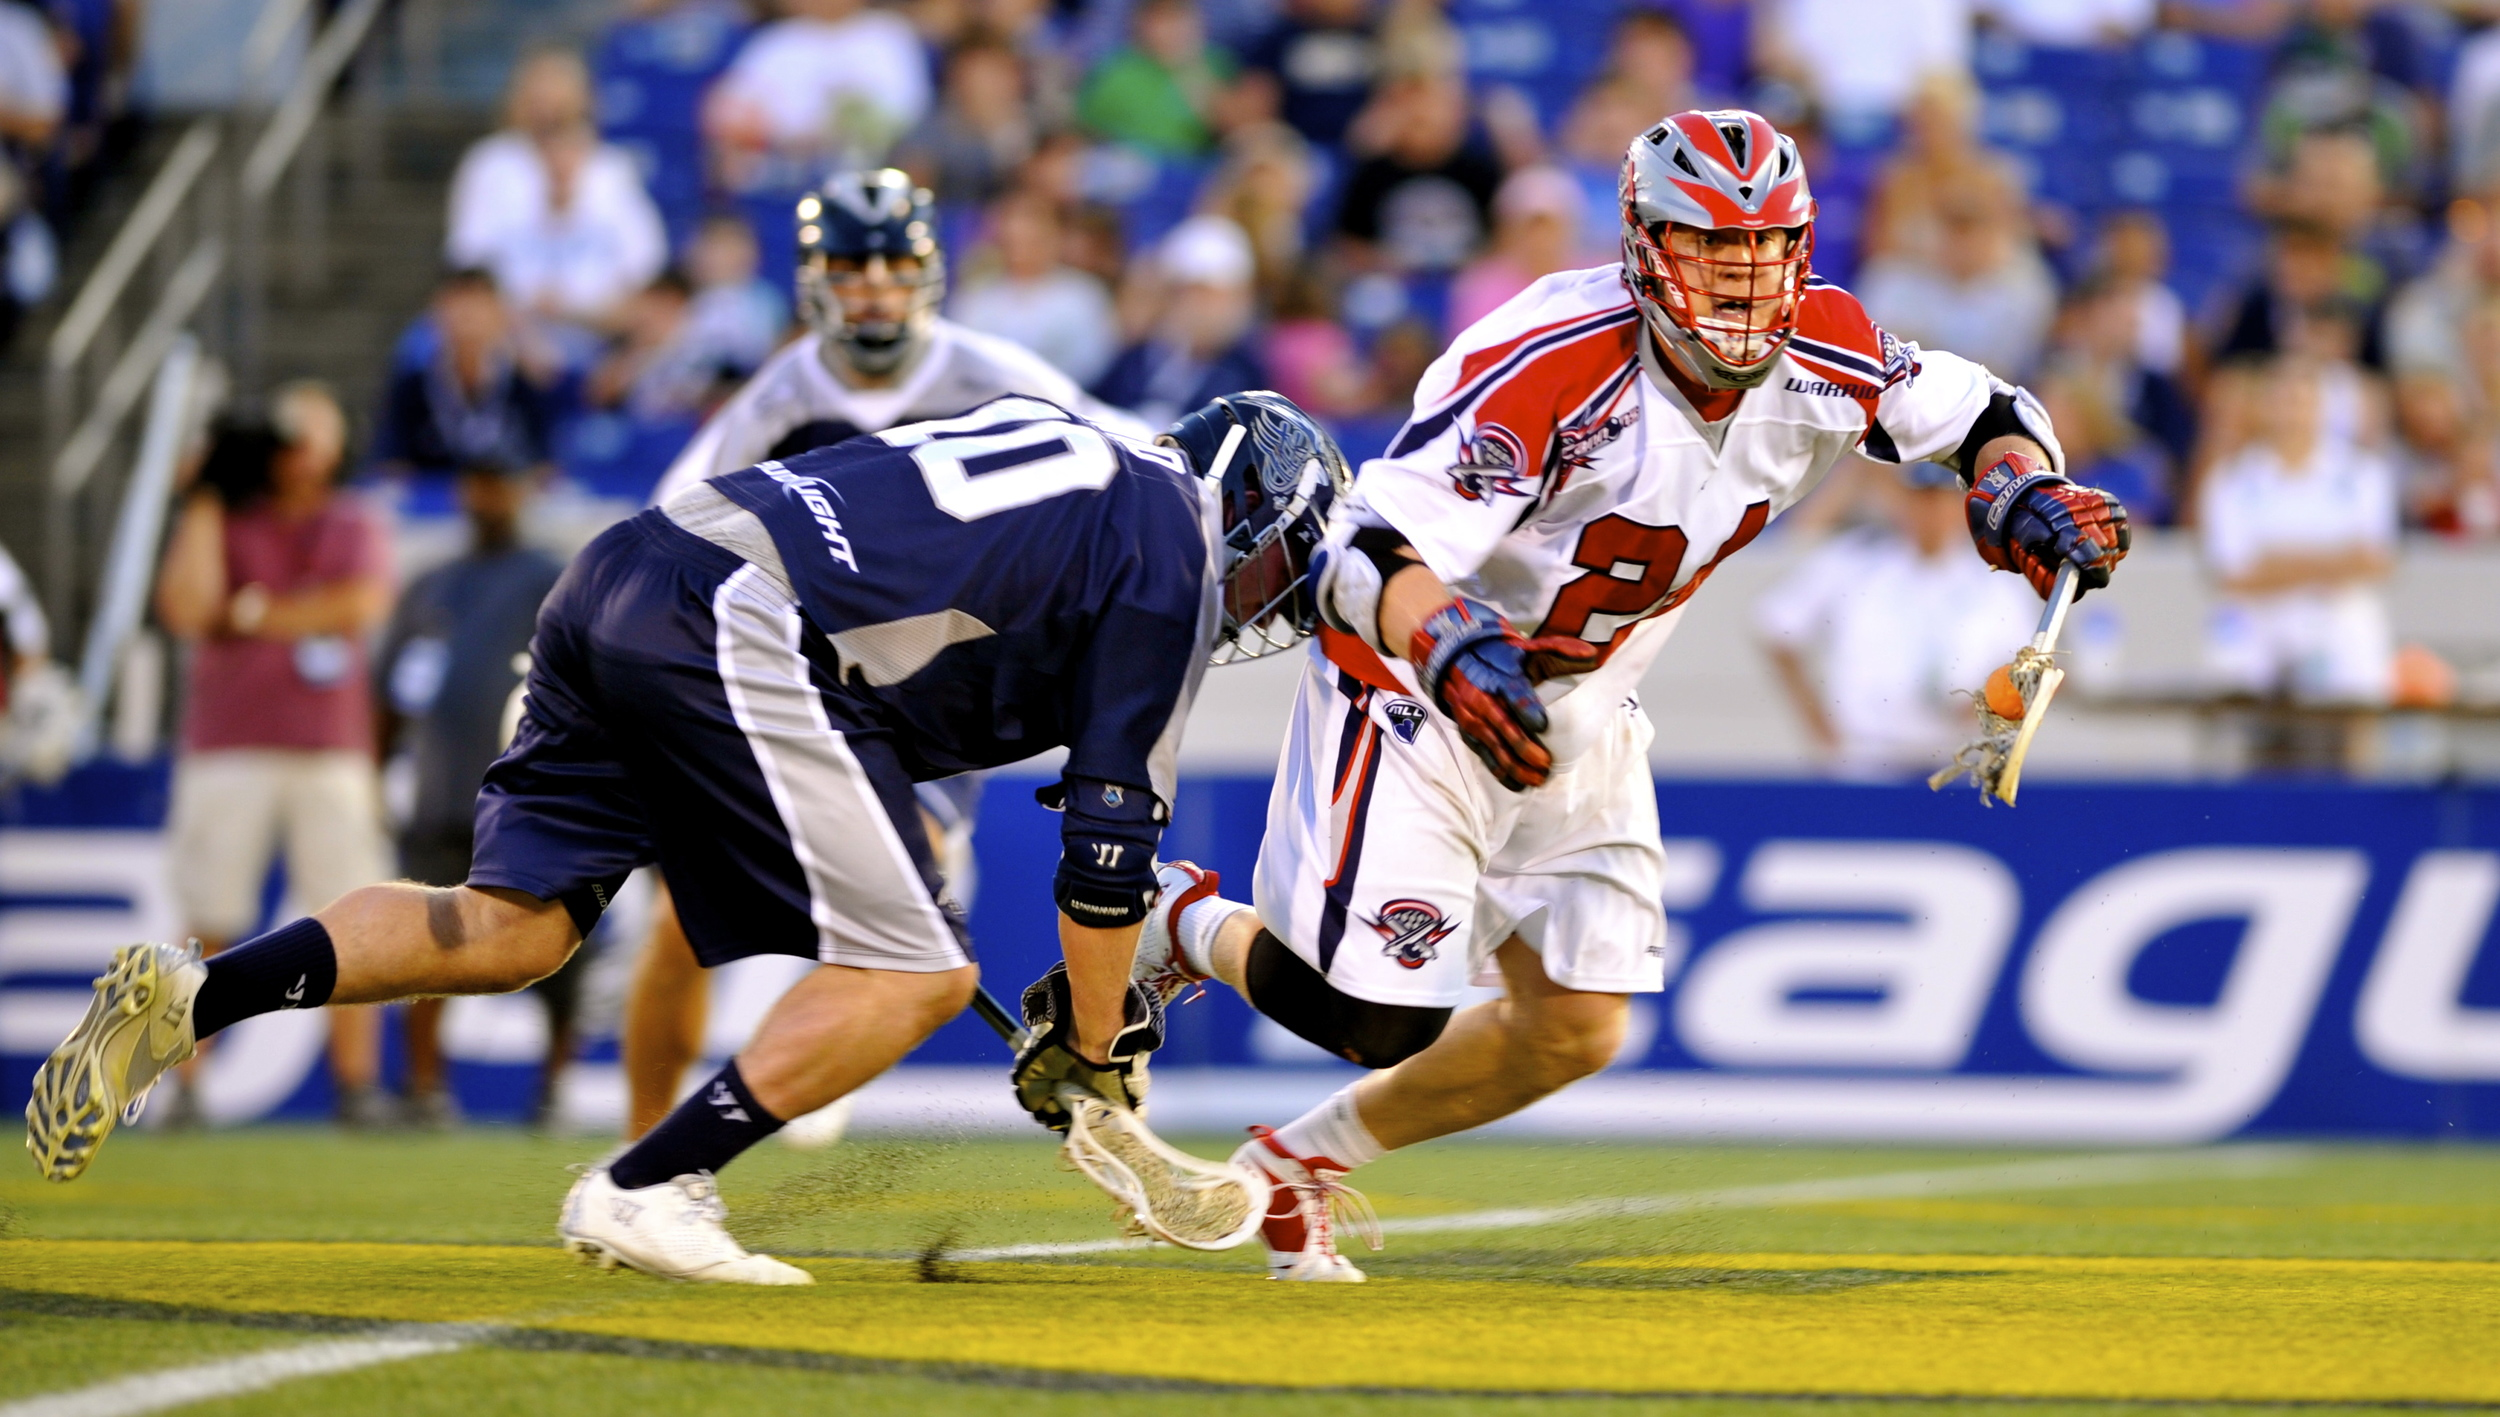 Name:  Chris Eck   Hometown:  Fairfield, CT   Age:  30   College:  Colgate University   Current Pro Team:  Boston Cannons   Signature Move:  Plunger